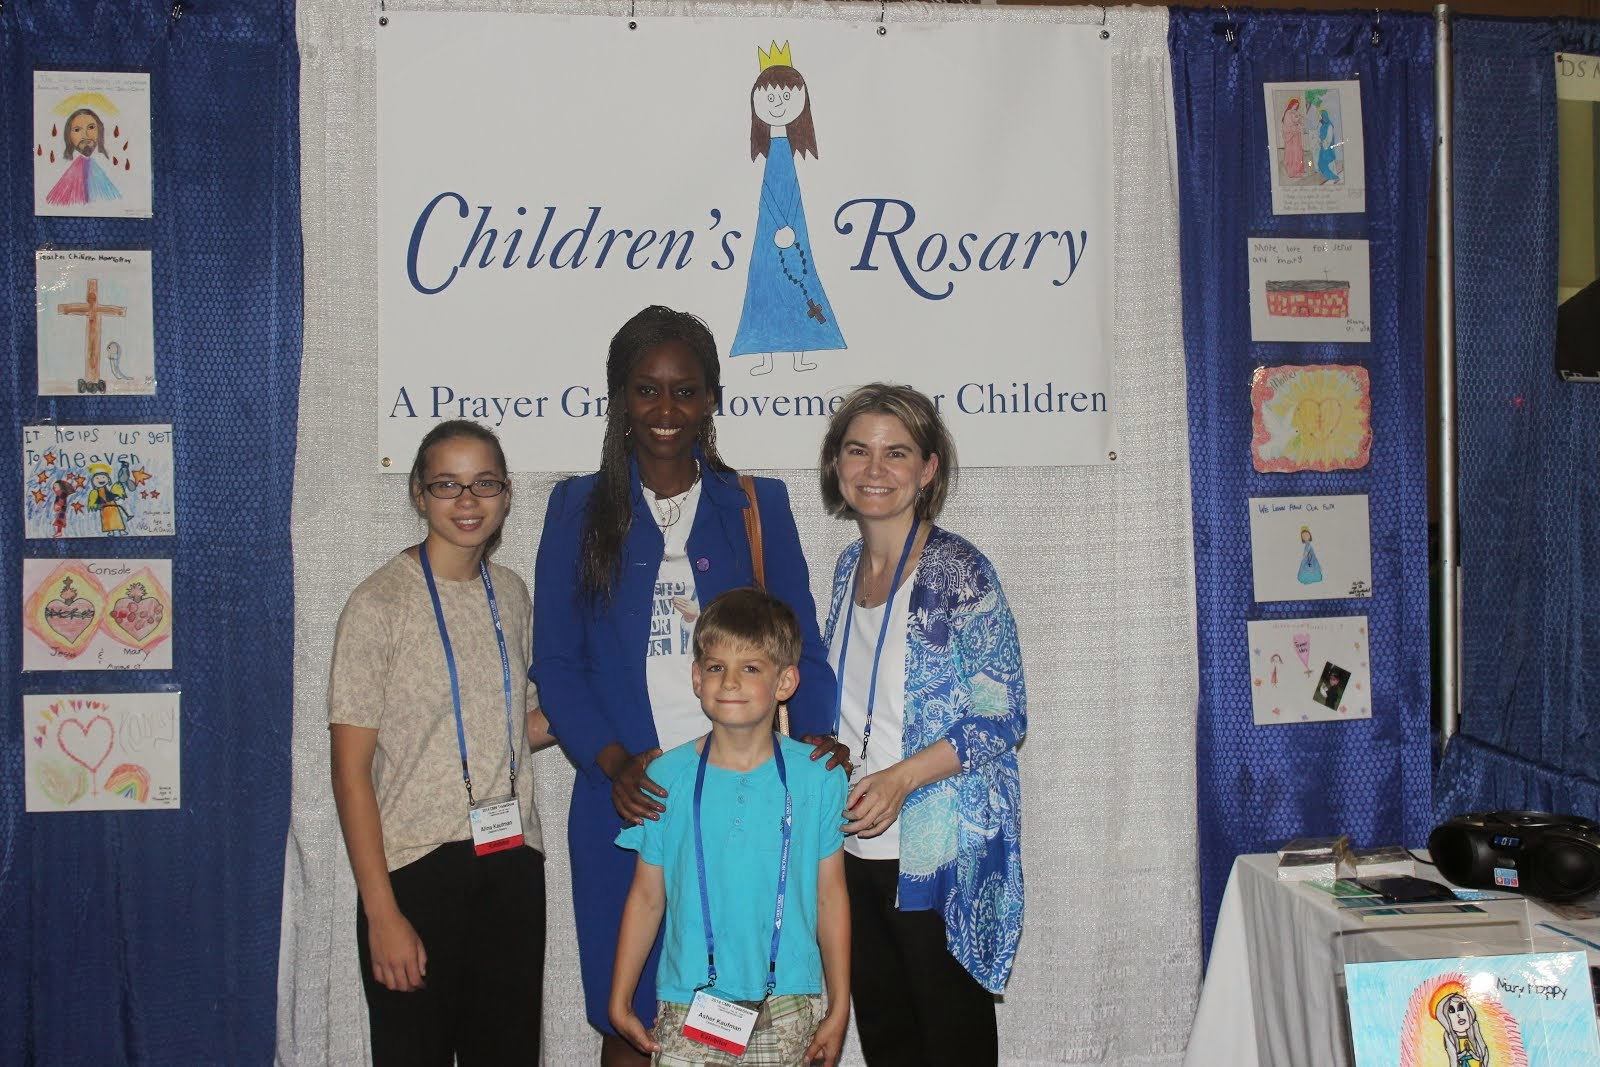 Children's Rosary Advisory Board